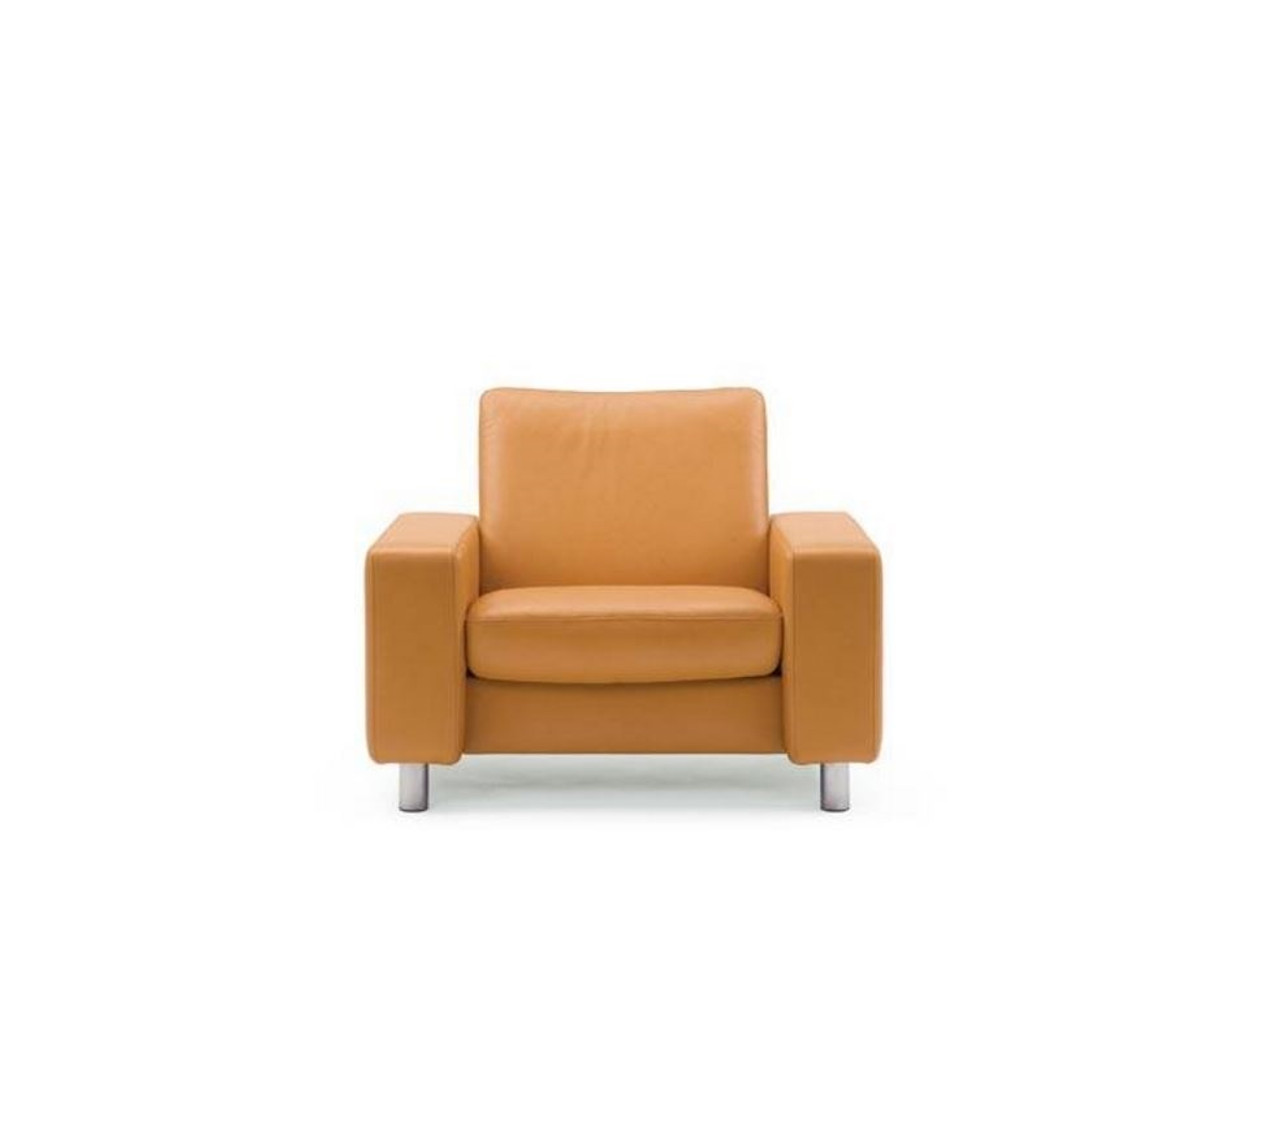 Stressless Windsor Sofa High Back Ekornes Stressless Pause Low Back Chair Ships Risk Free